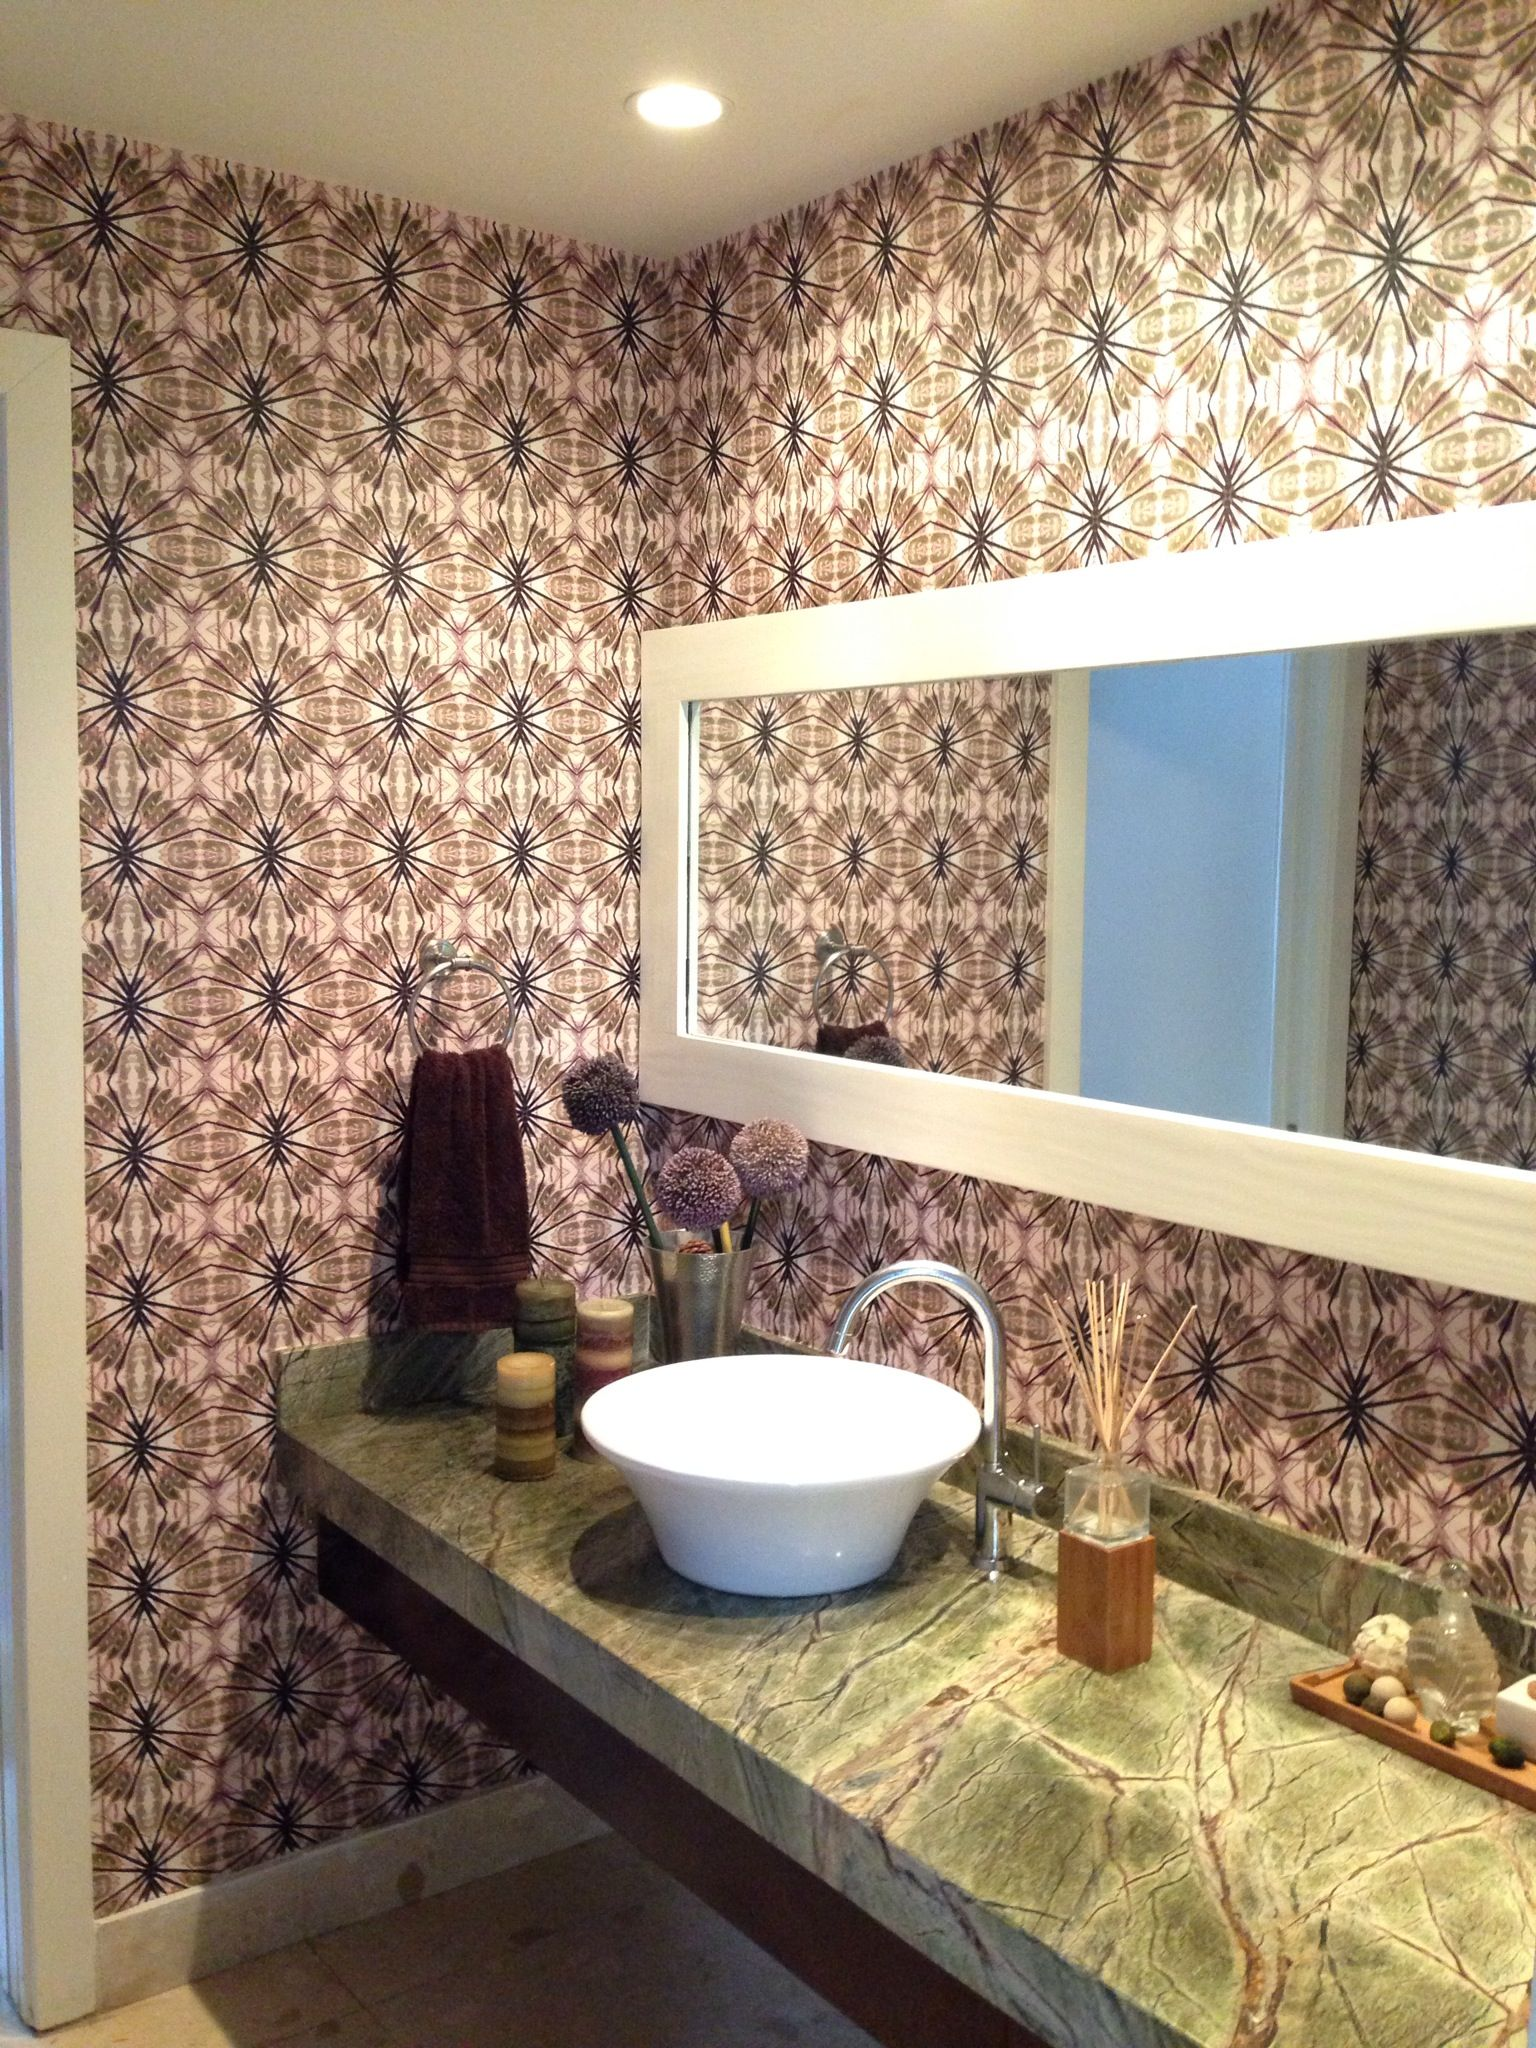 Ojibwe Wallcovering By EDGE Collections Featured In A Private Residenceu0027s  Bathroom In Miami, FL. Interior Designed By Kakar House Of Design By Anilu2026